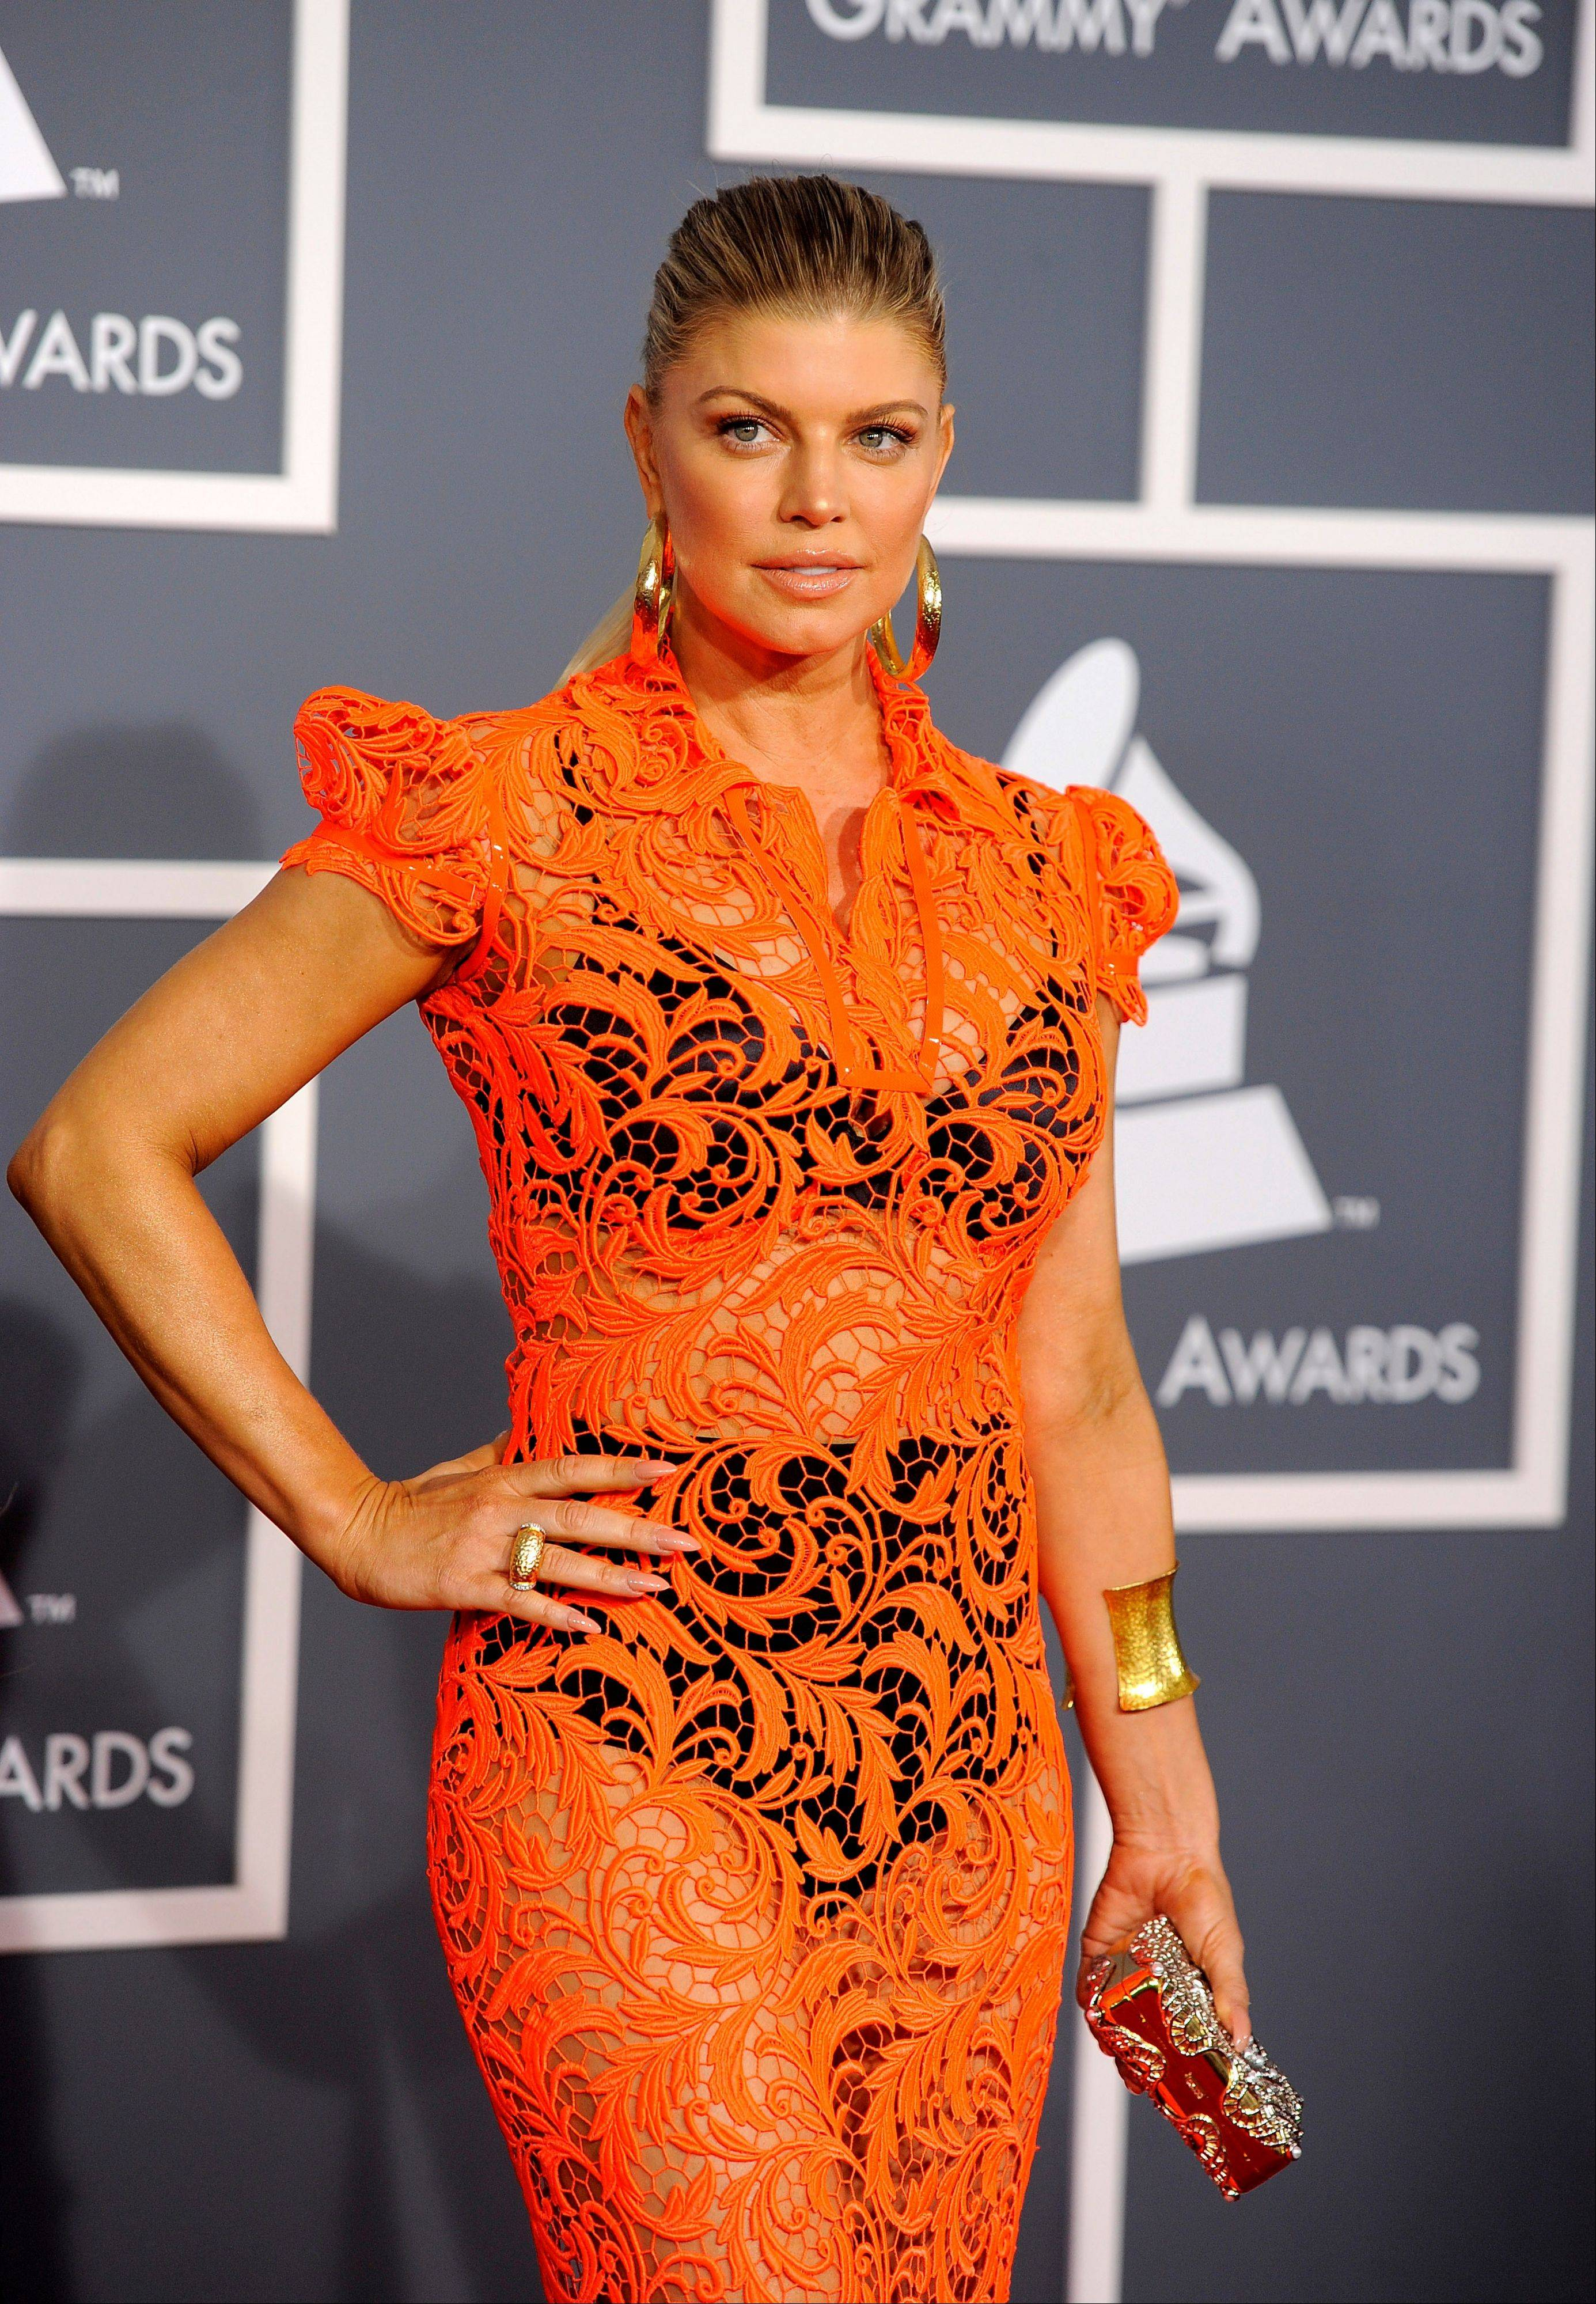 Fergie arrives Sunday at the 54th annual Grammy Awards in Los Angeles.